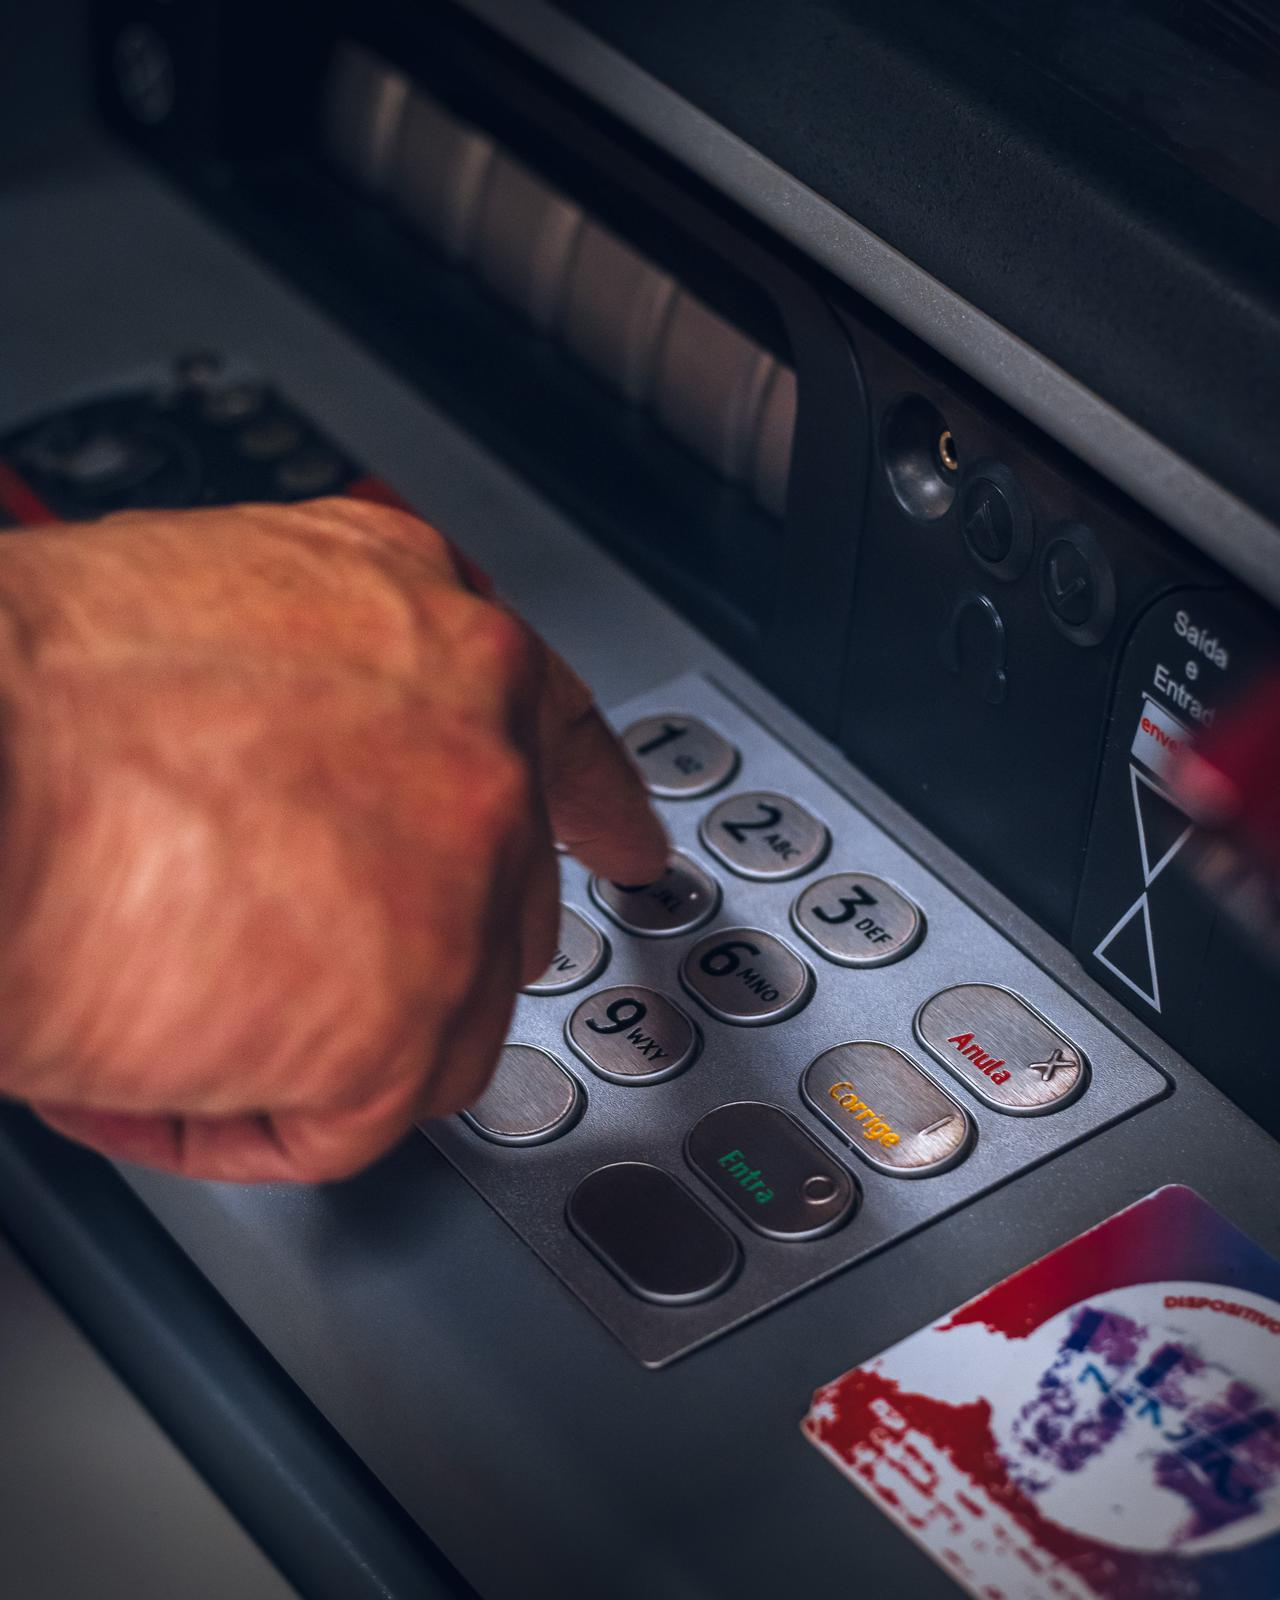 Machine working after ATM equipment repair.